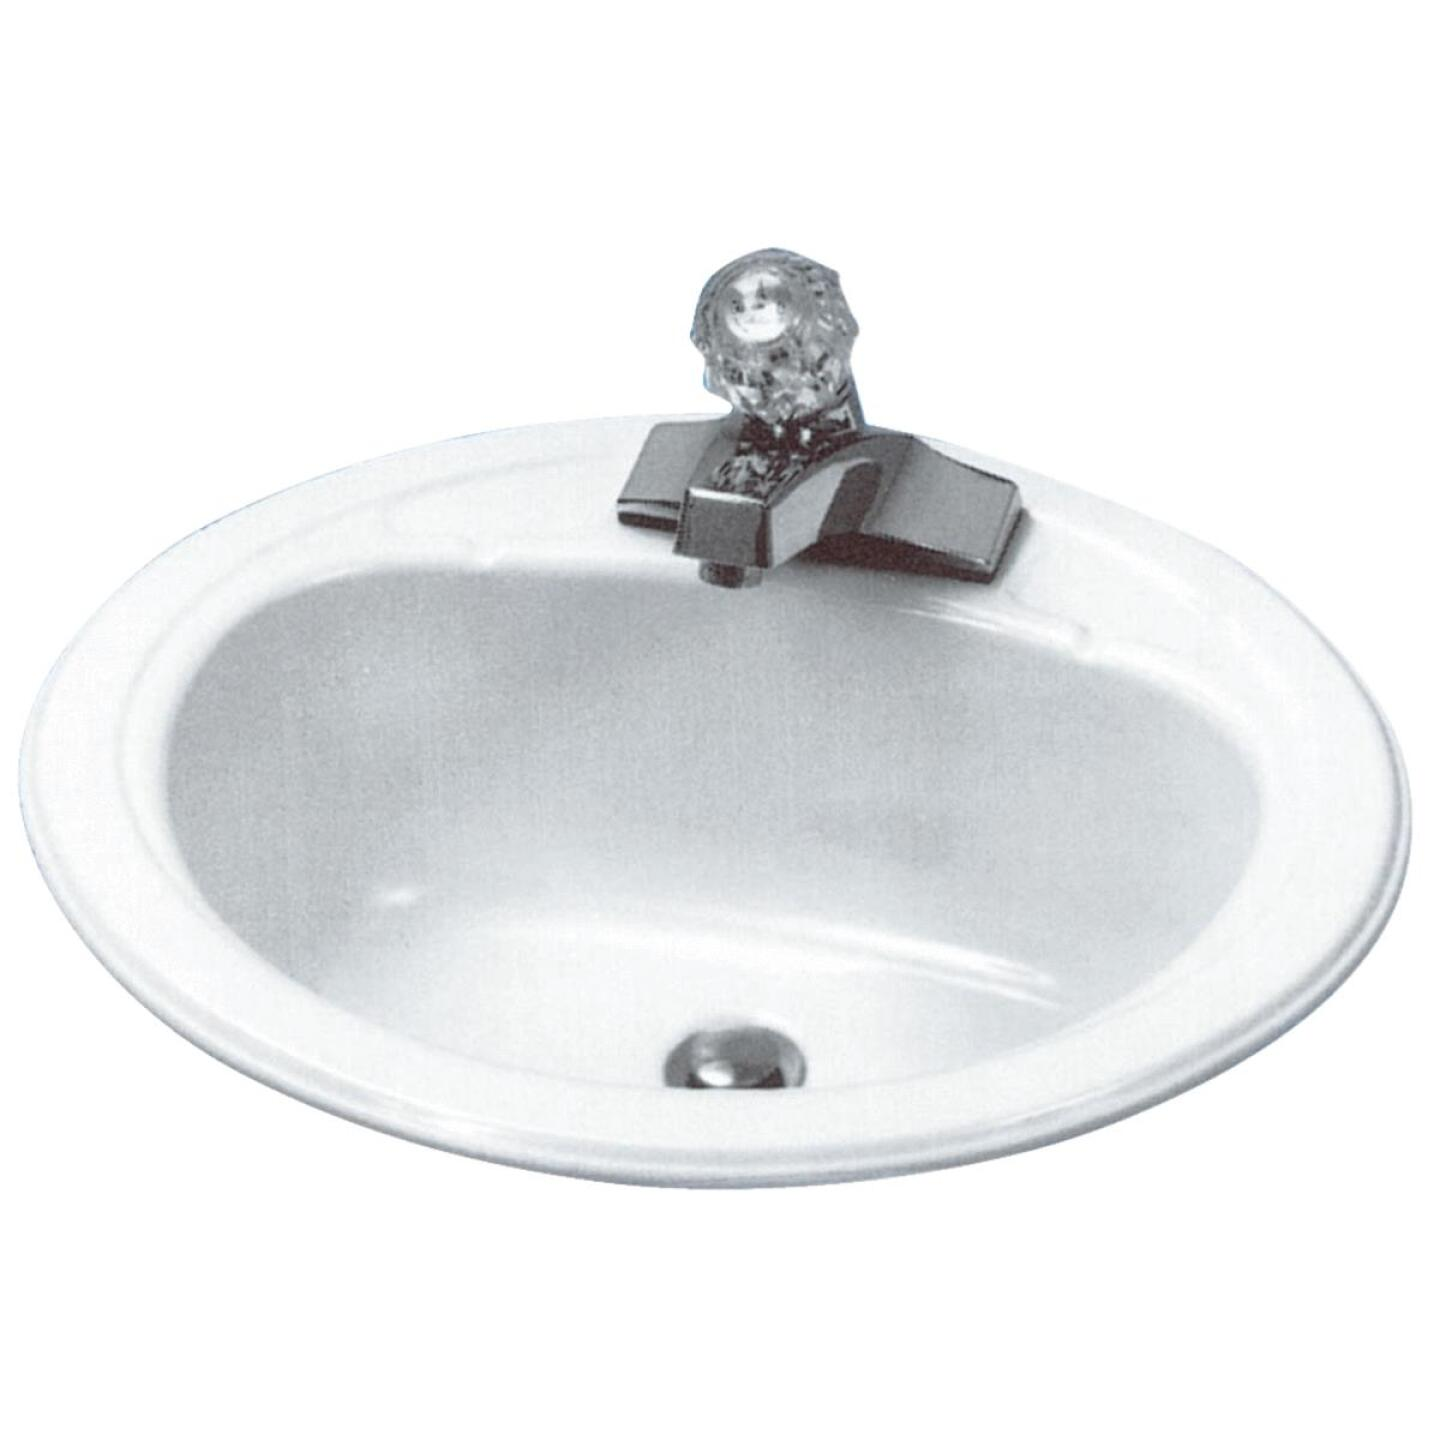 Briggs Anderson Oval Drop-In Bathroom Sink, White Image 1